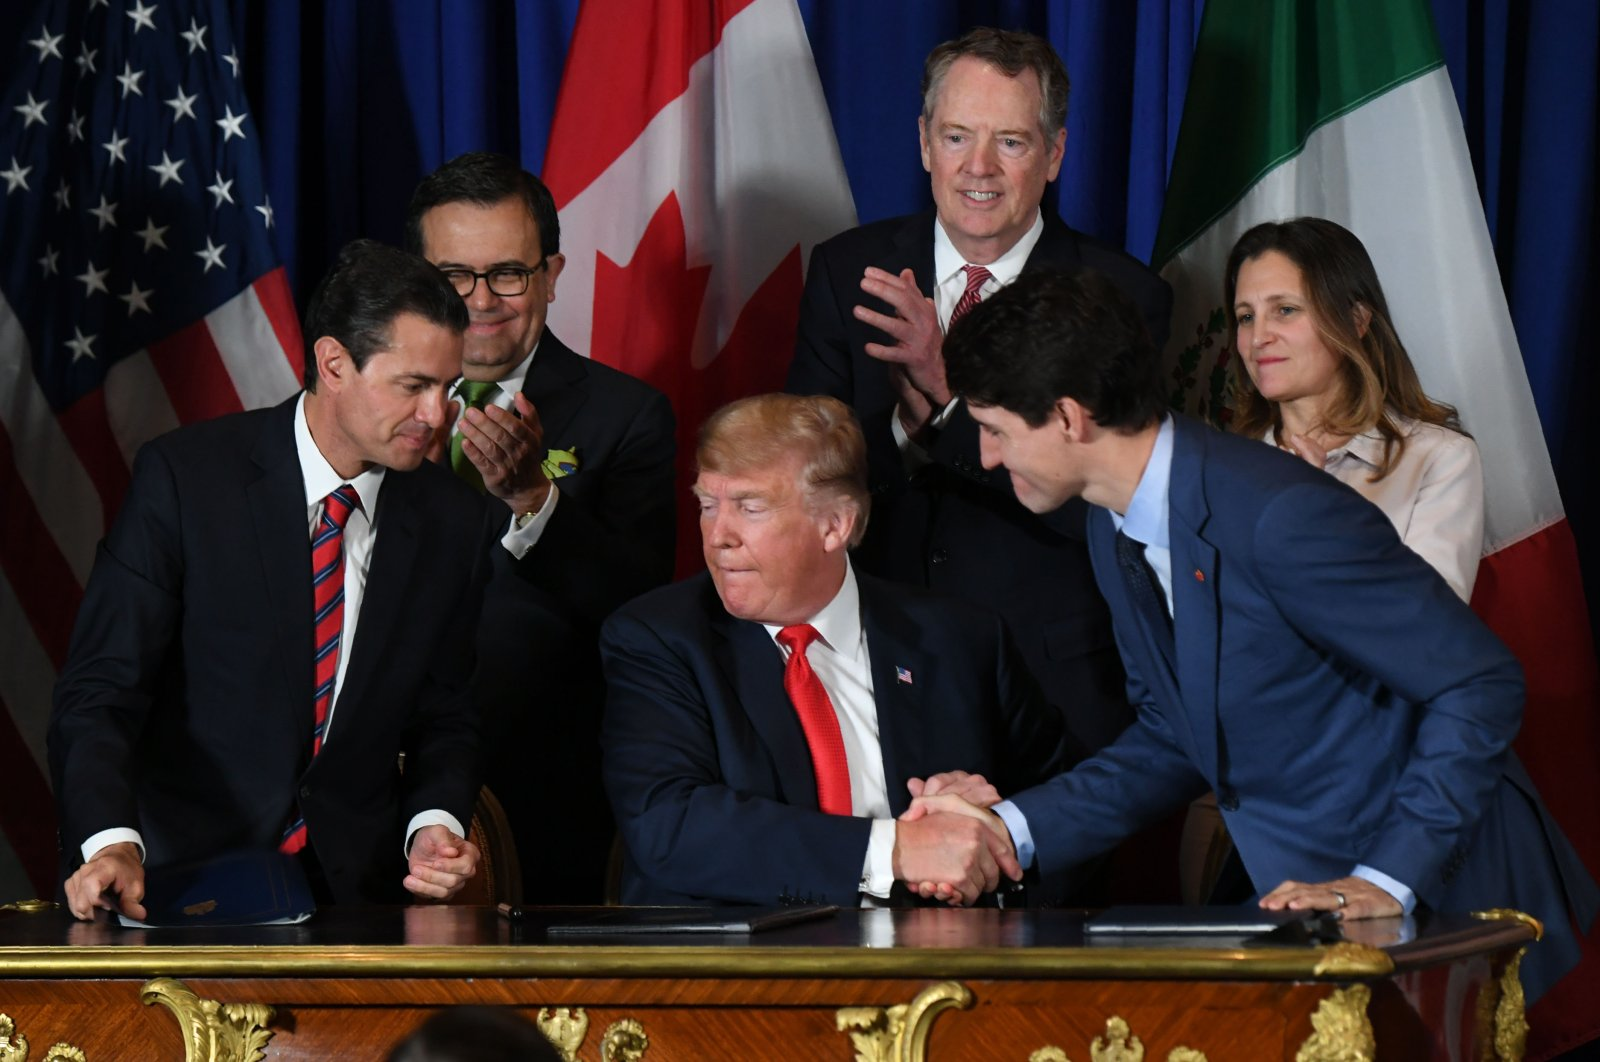 Former Mexican President Enrique Pena Nieto (L), U.S. President Donald Trump (C) and Canadian Prime Minister Justin Trudeau are pictured after signing a new free trade agreement, Buenos Aires, Nov. 30, 2018. (AFP Photo)